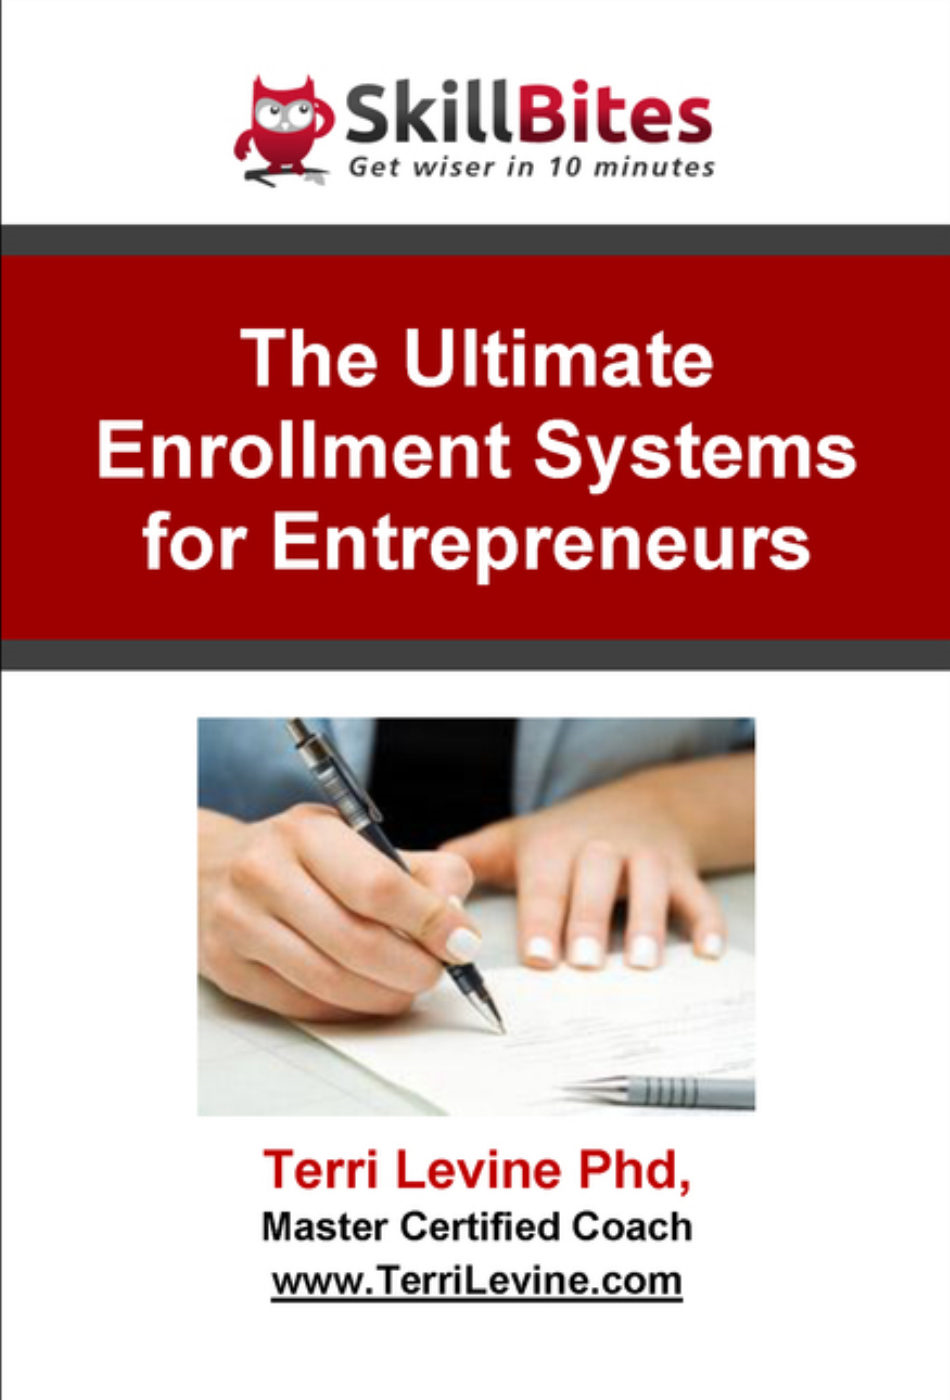 The Ultimate Enrollment Systems for Entrepreneurs